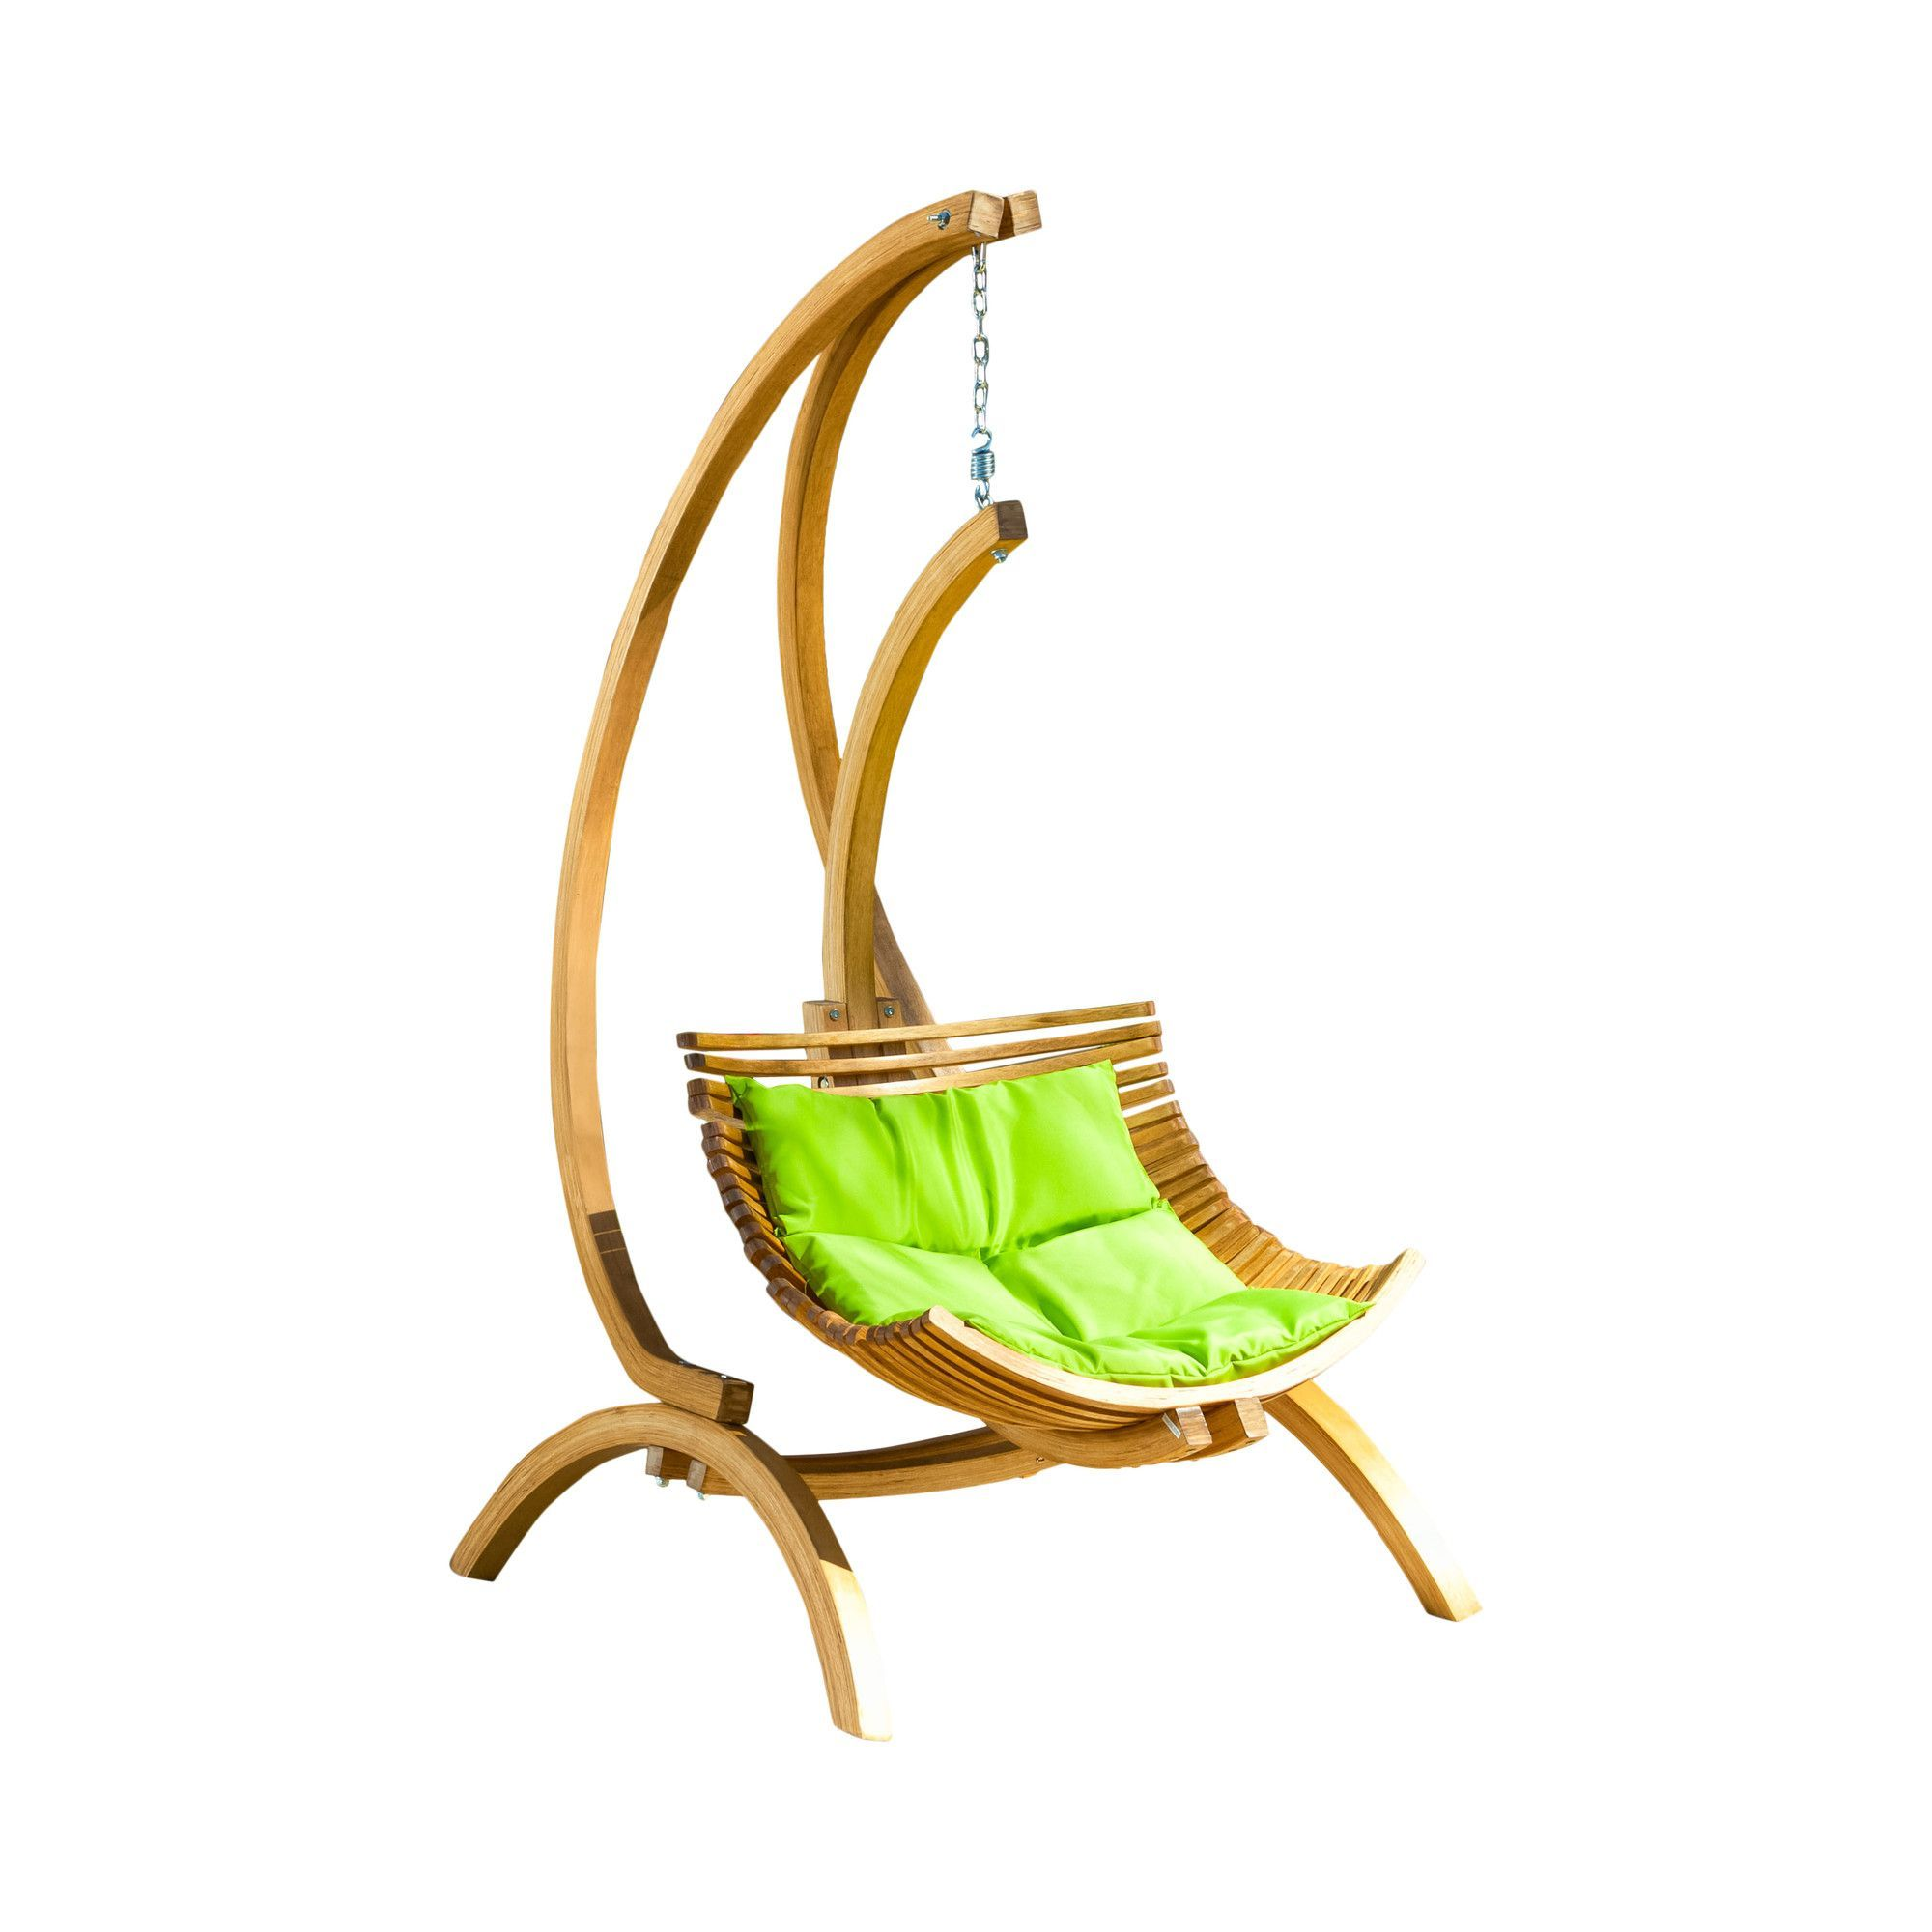 Catalina Swing Chair in Green | Products | Pinterest